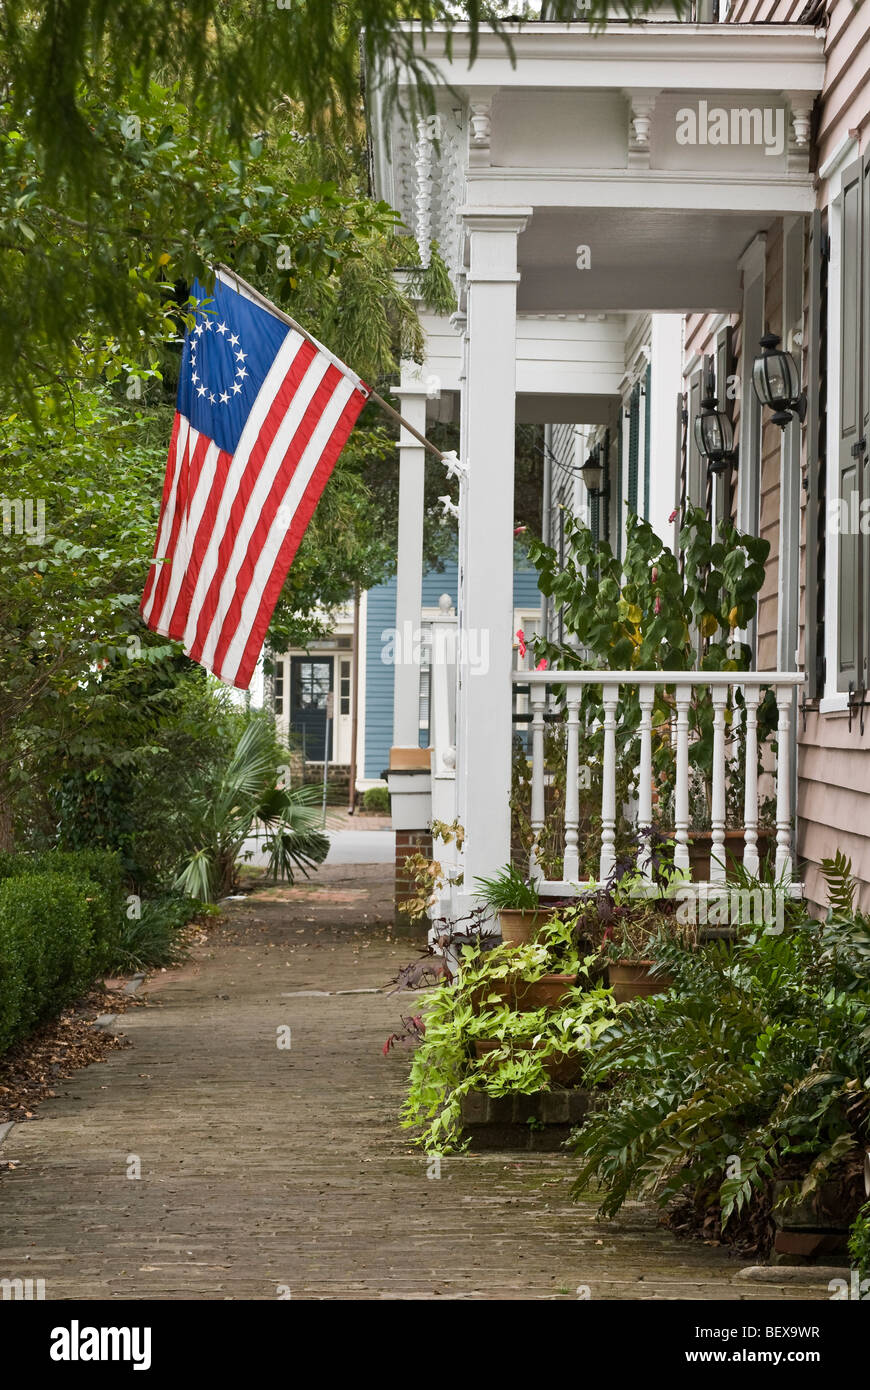 American Flag On Porch Of House Savannah Georgia Usa Stock Photo